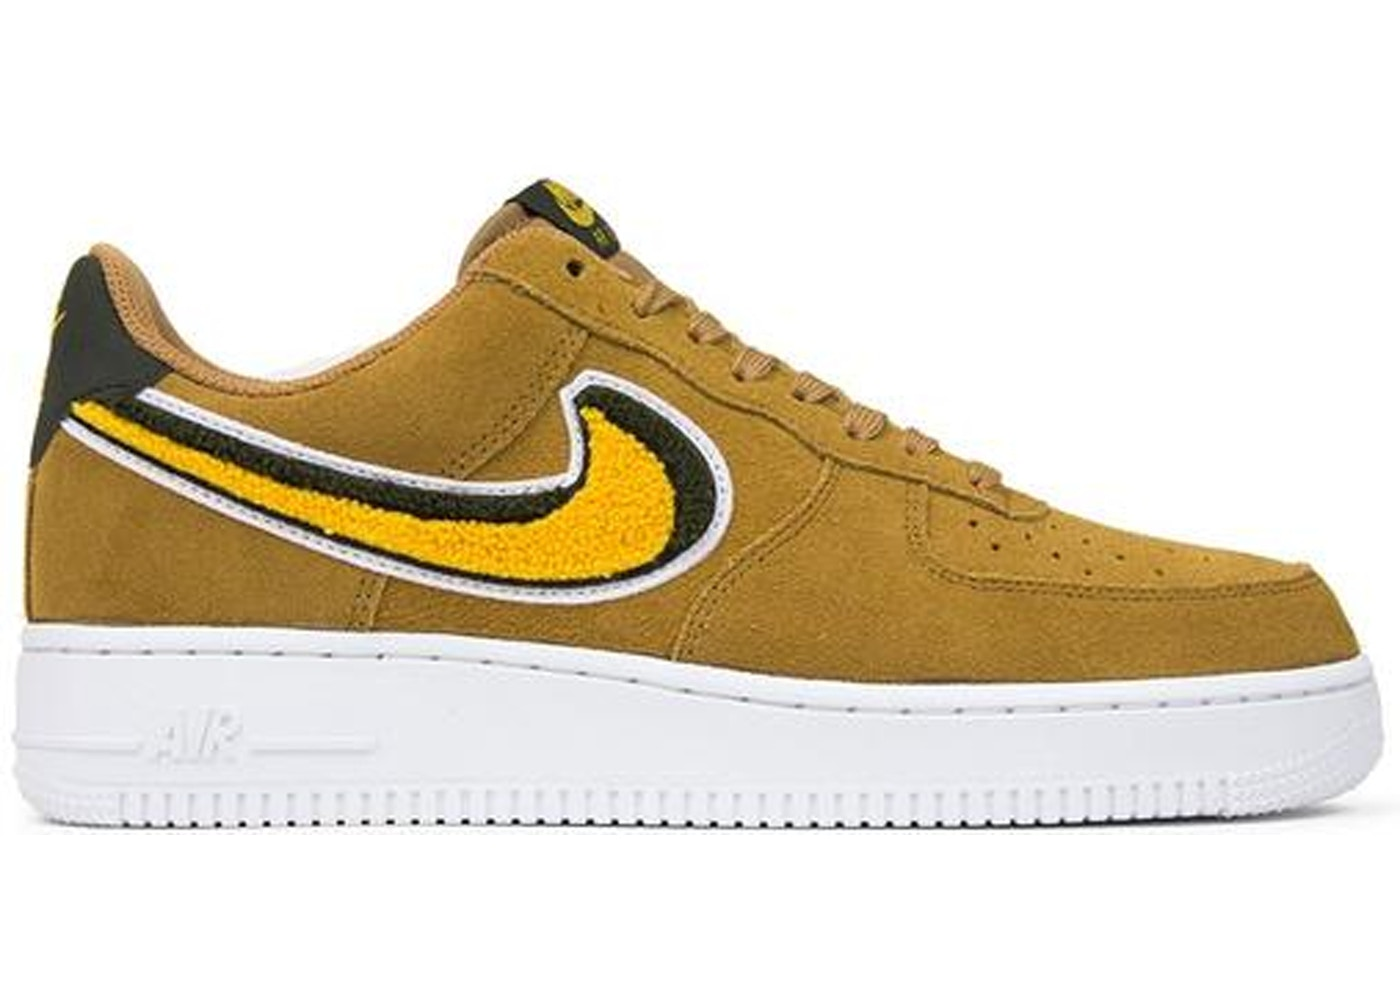 Nike Air Force 1 Low 3D Chenille Swoosh Muted Bronze